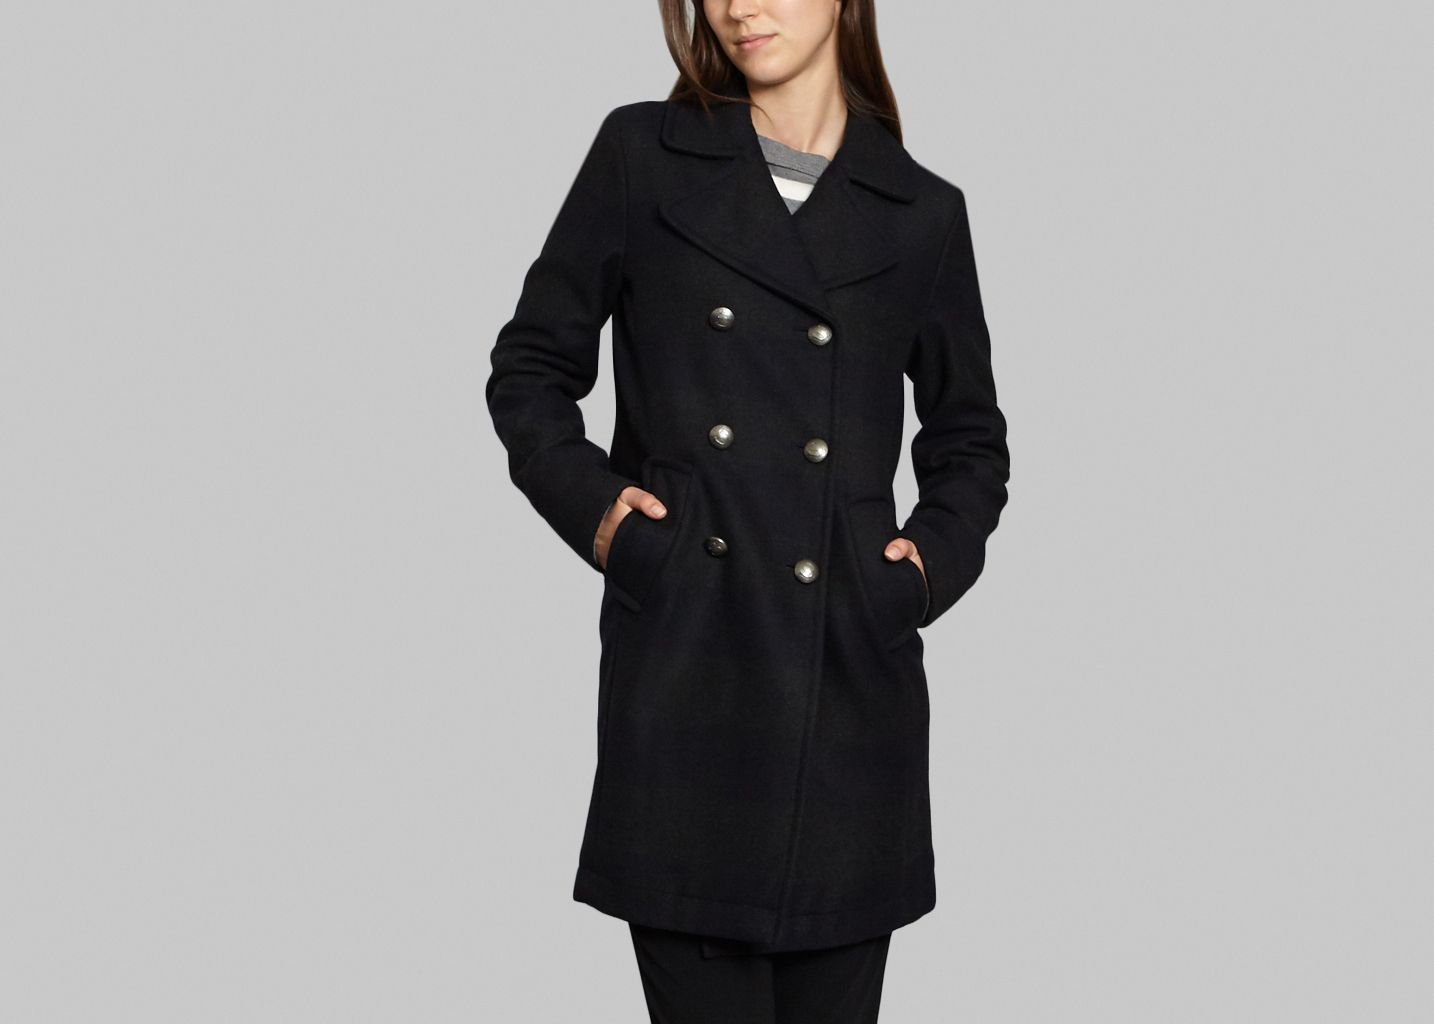 Striped Pea Coat - Sonia By